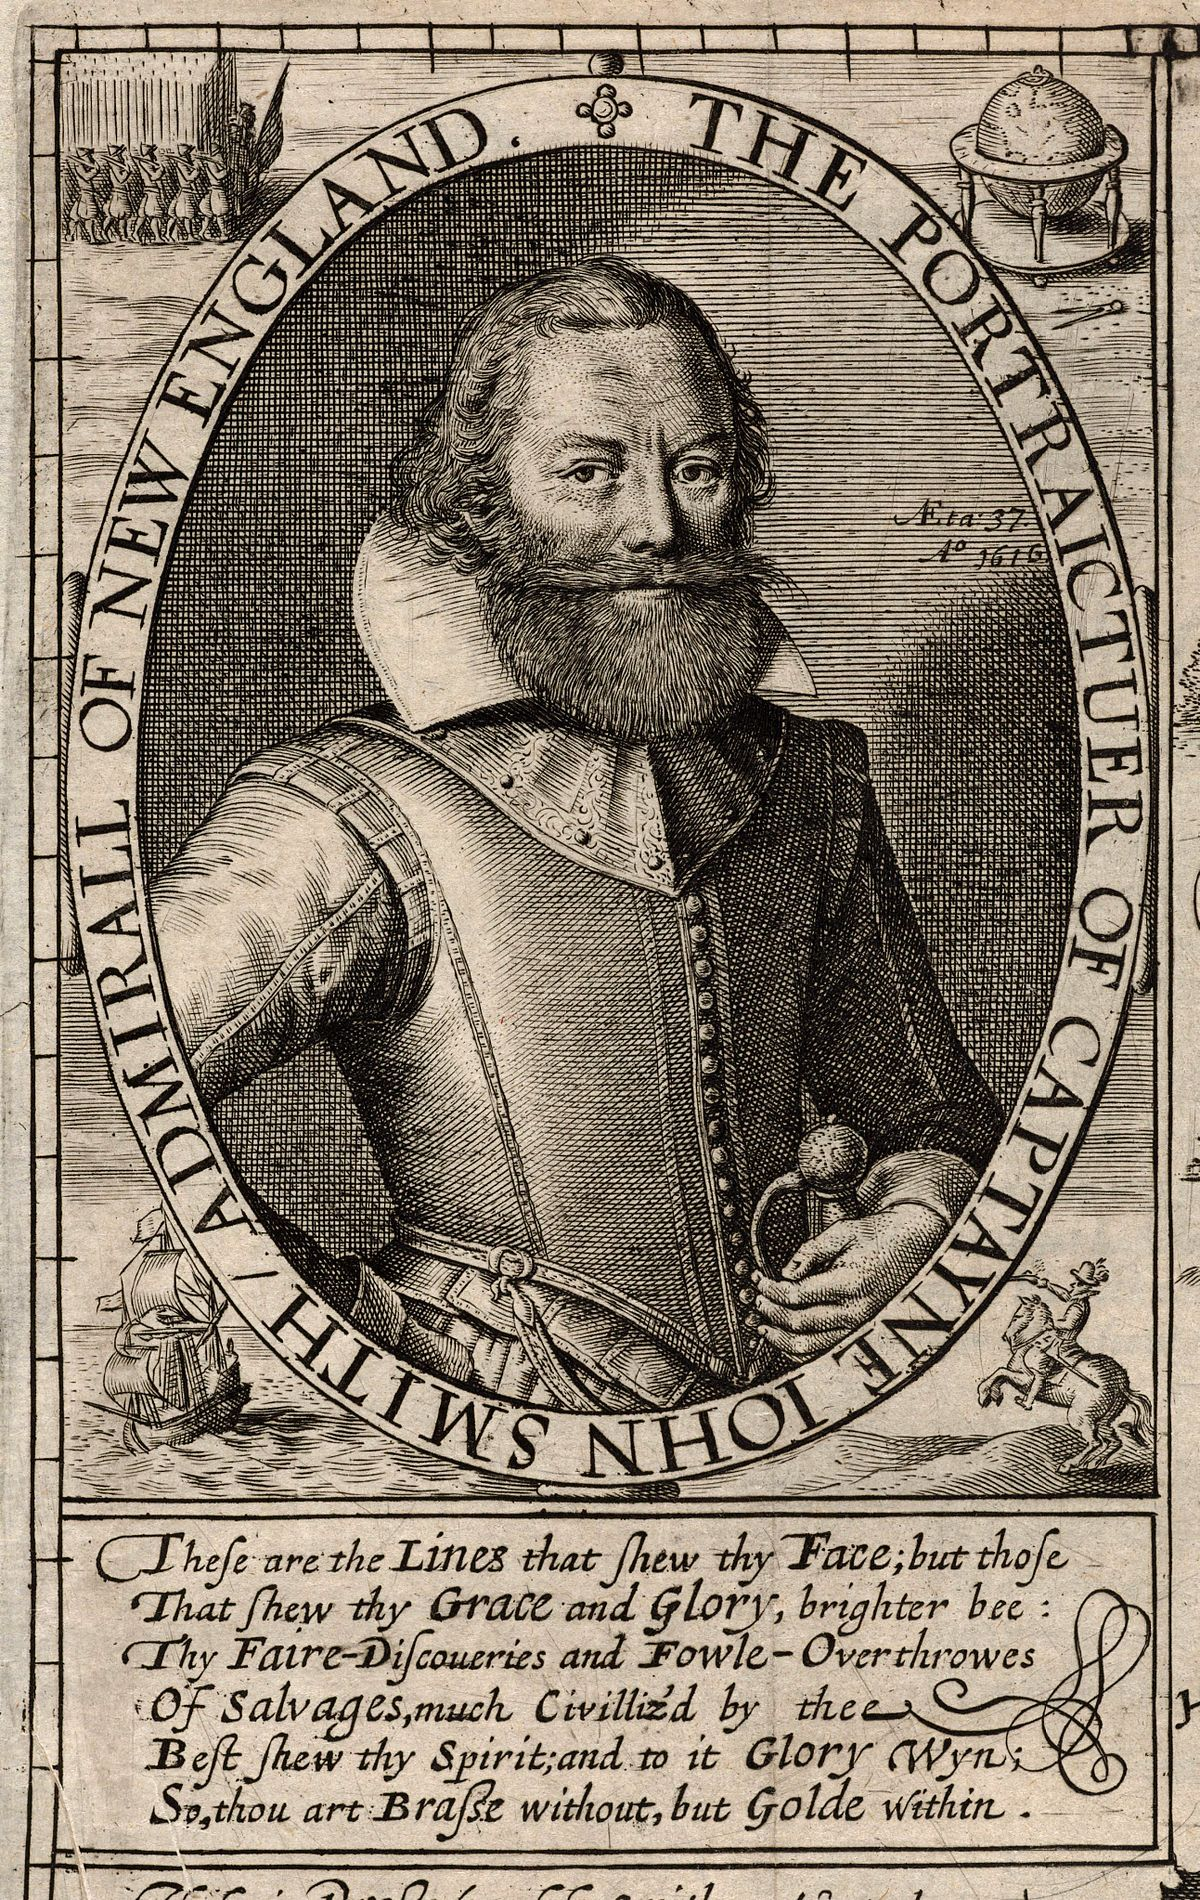 Captain John Smith, engraved by Simon Pass after a drawing by Robert Clarke. From the sixth state of the map in the 1627 edition of Generall Historie by Captain John Smith.